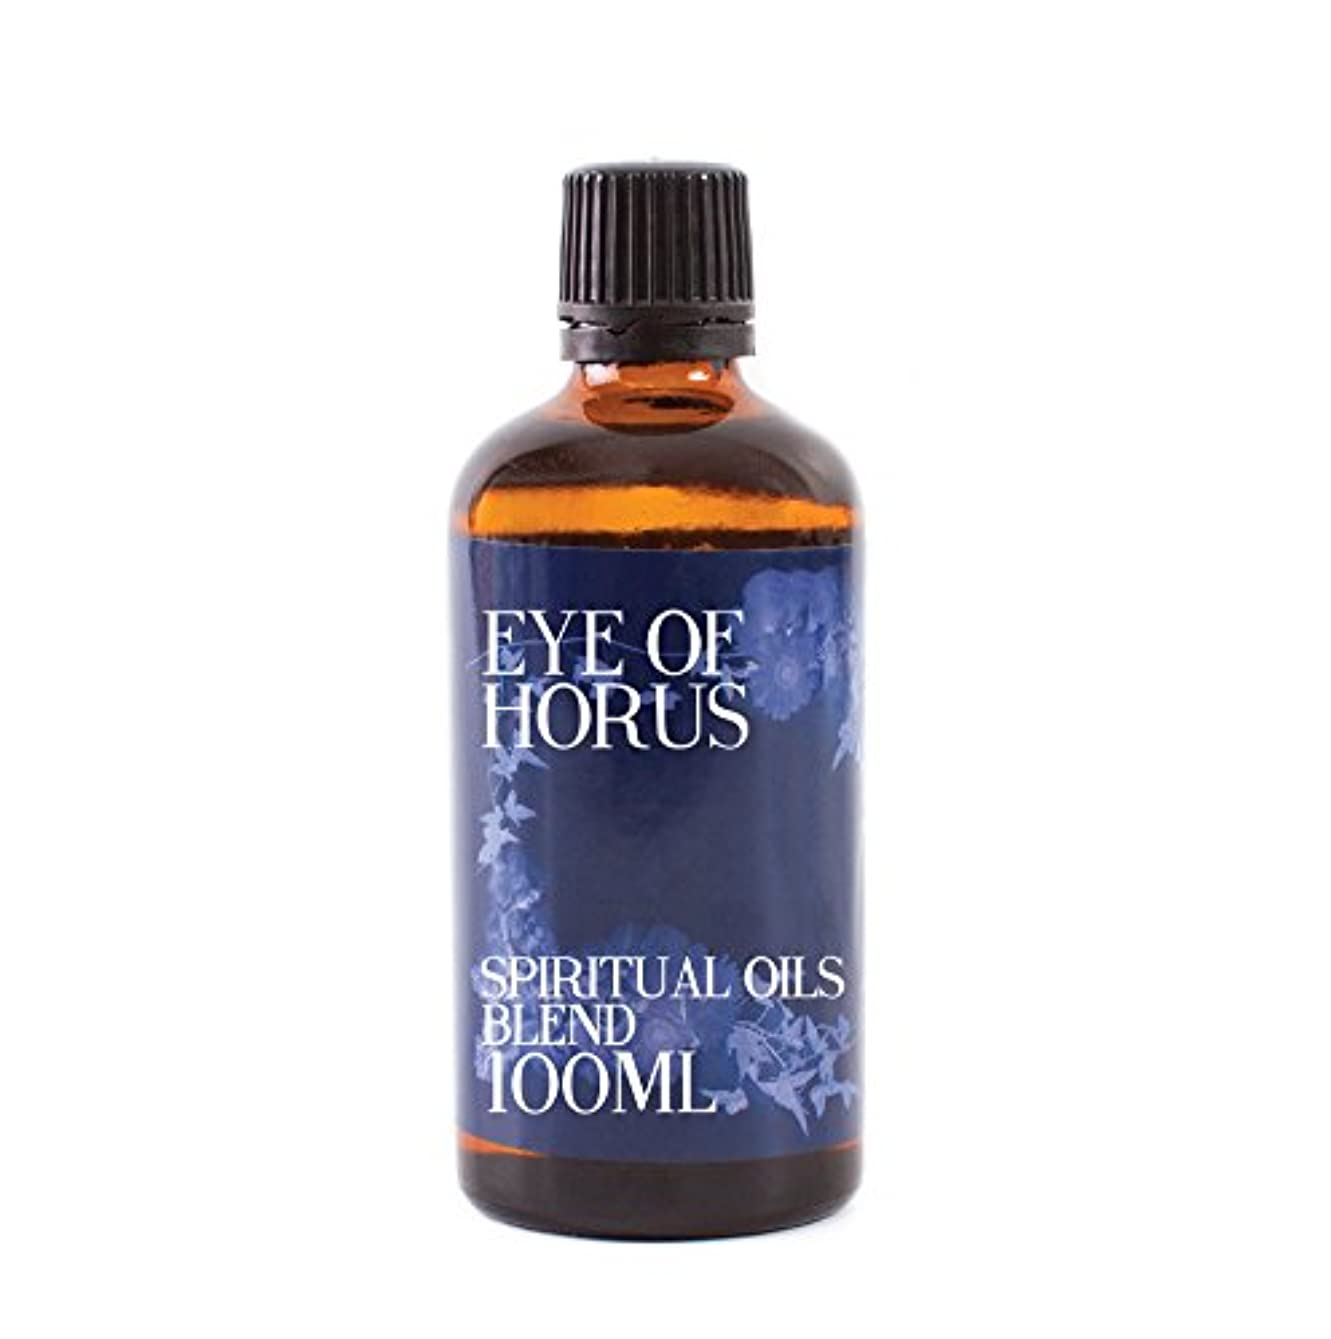 から聞くペストアーネストシャクルトンMystic Moments | Eye of Horus | Spiritual Essential Oil Blend - 100ml